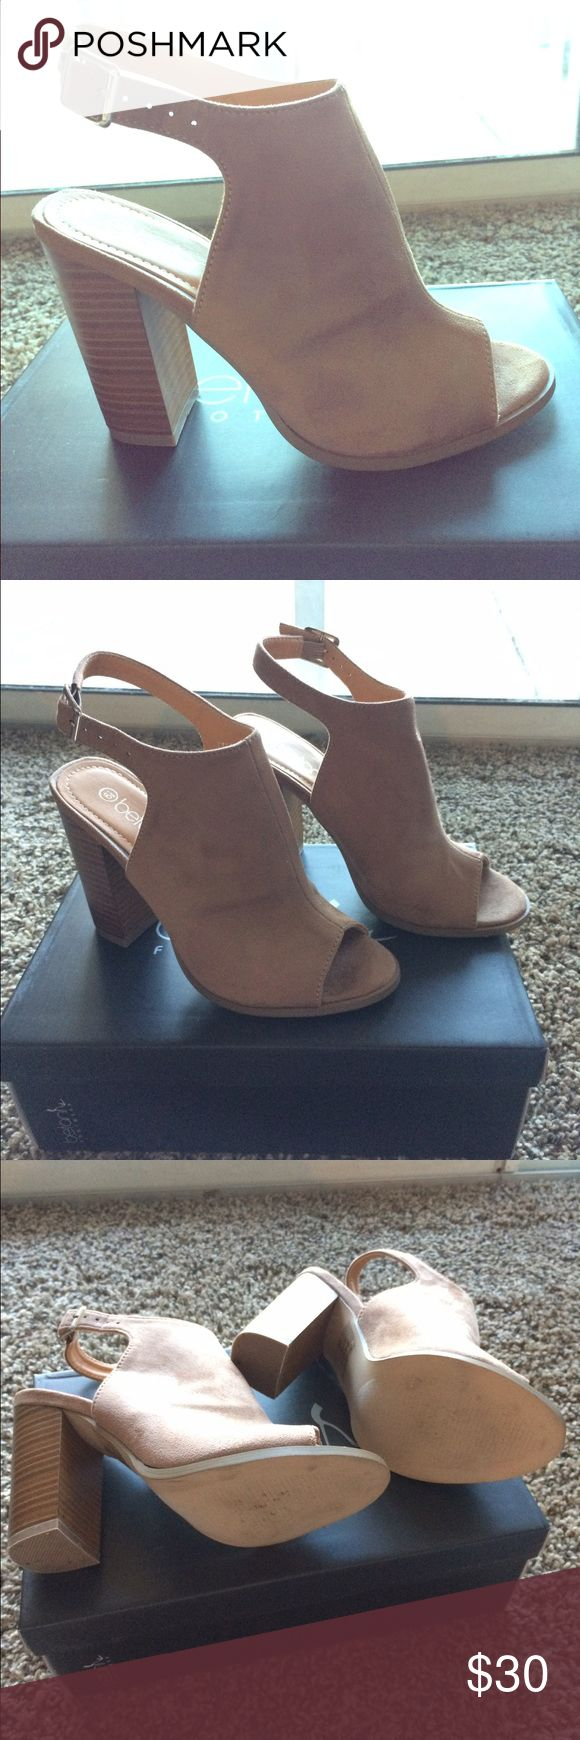 Women's Taupe Suede Peep Toe Shoes Size 6.5, worn once, great condition Betani Shoes Ankle Boots & Booties